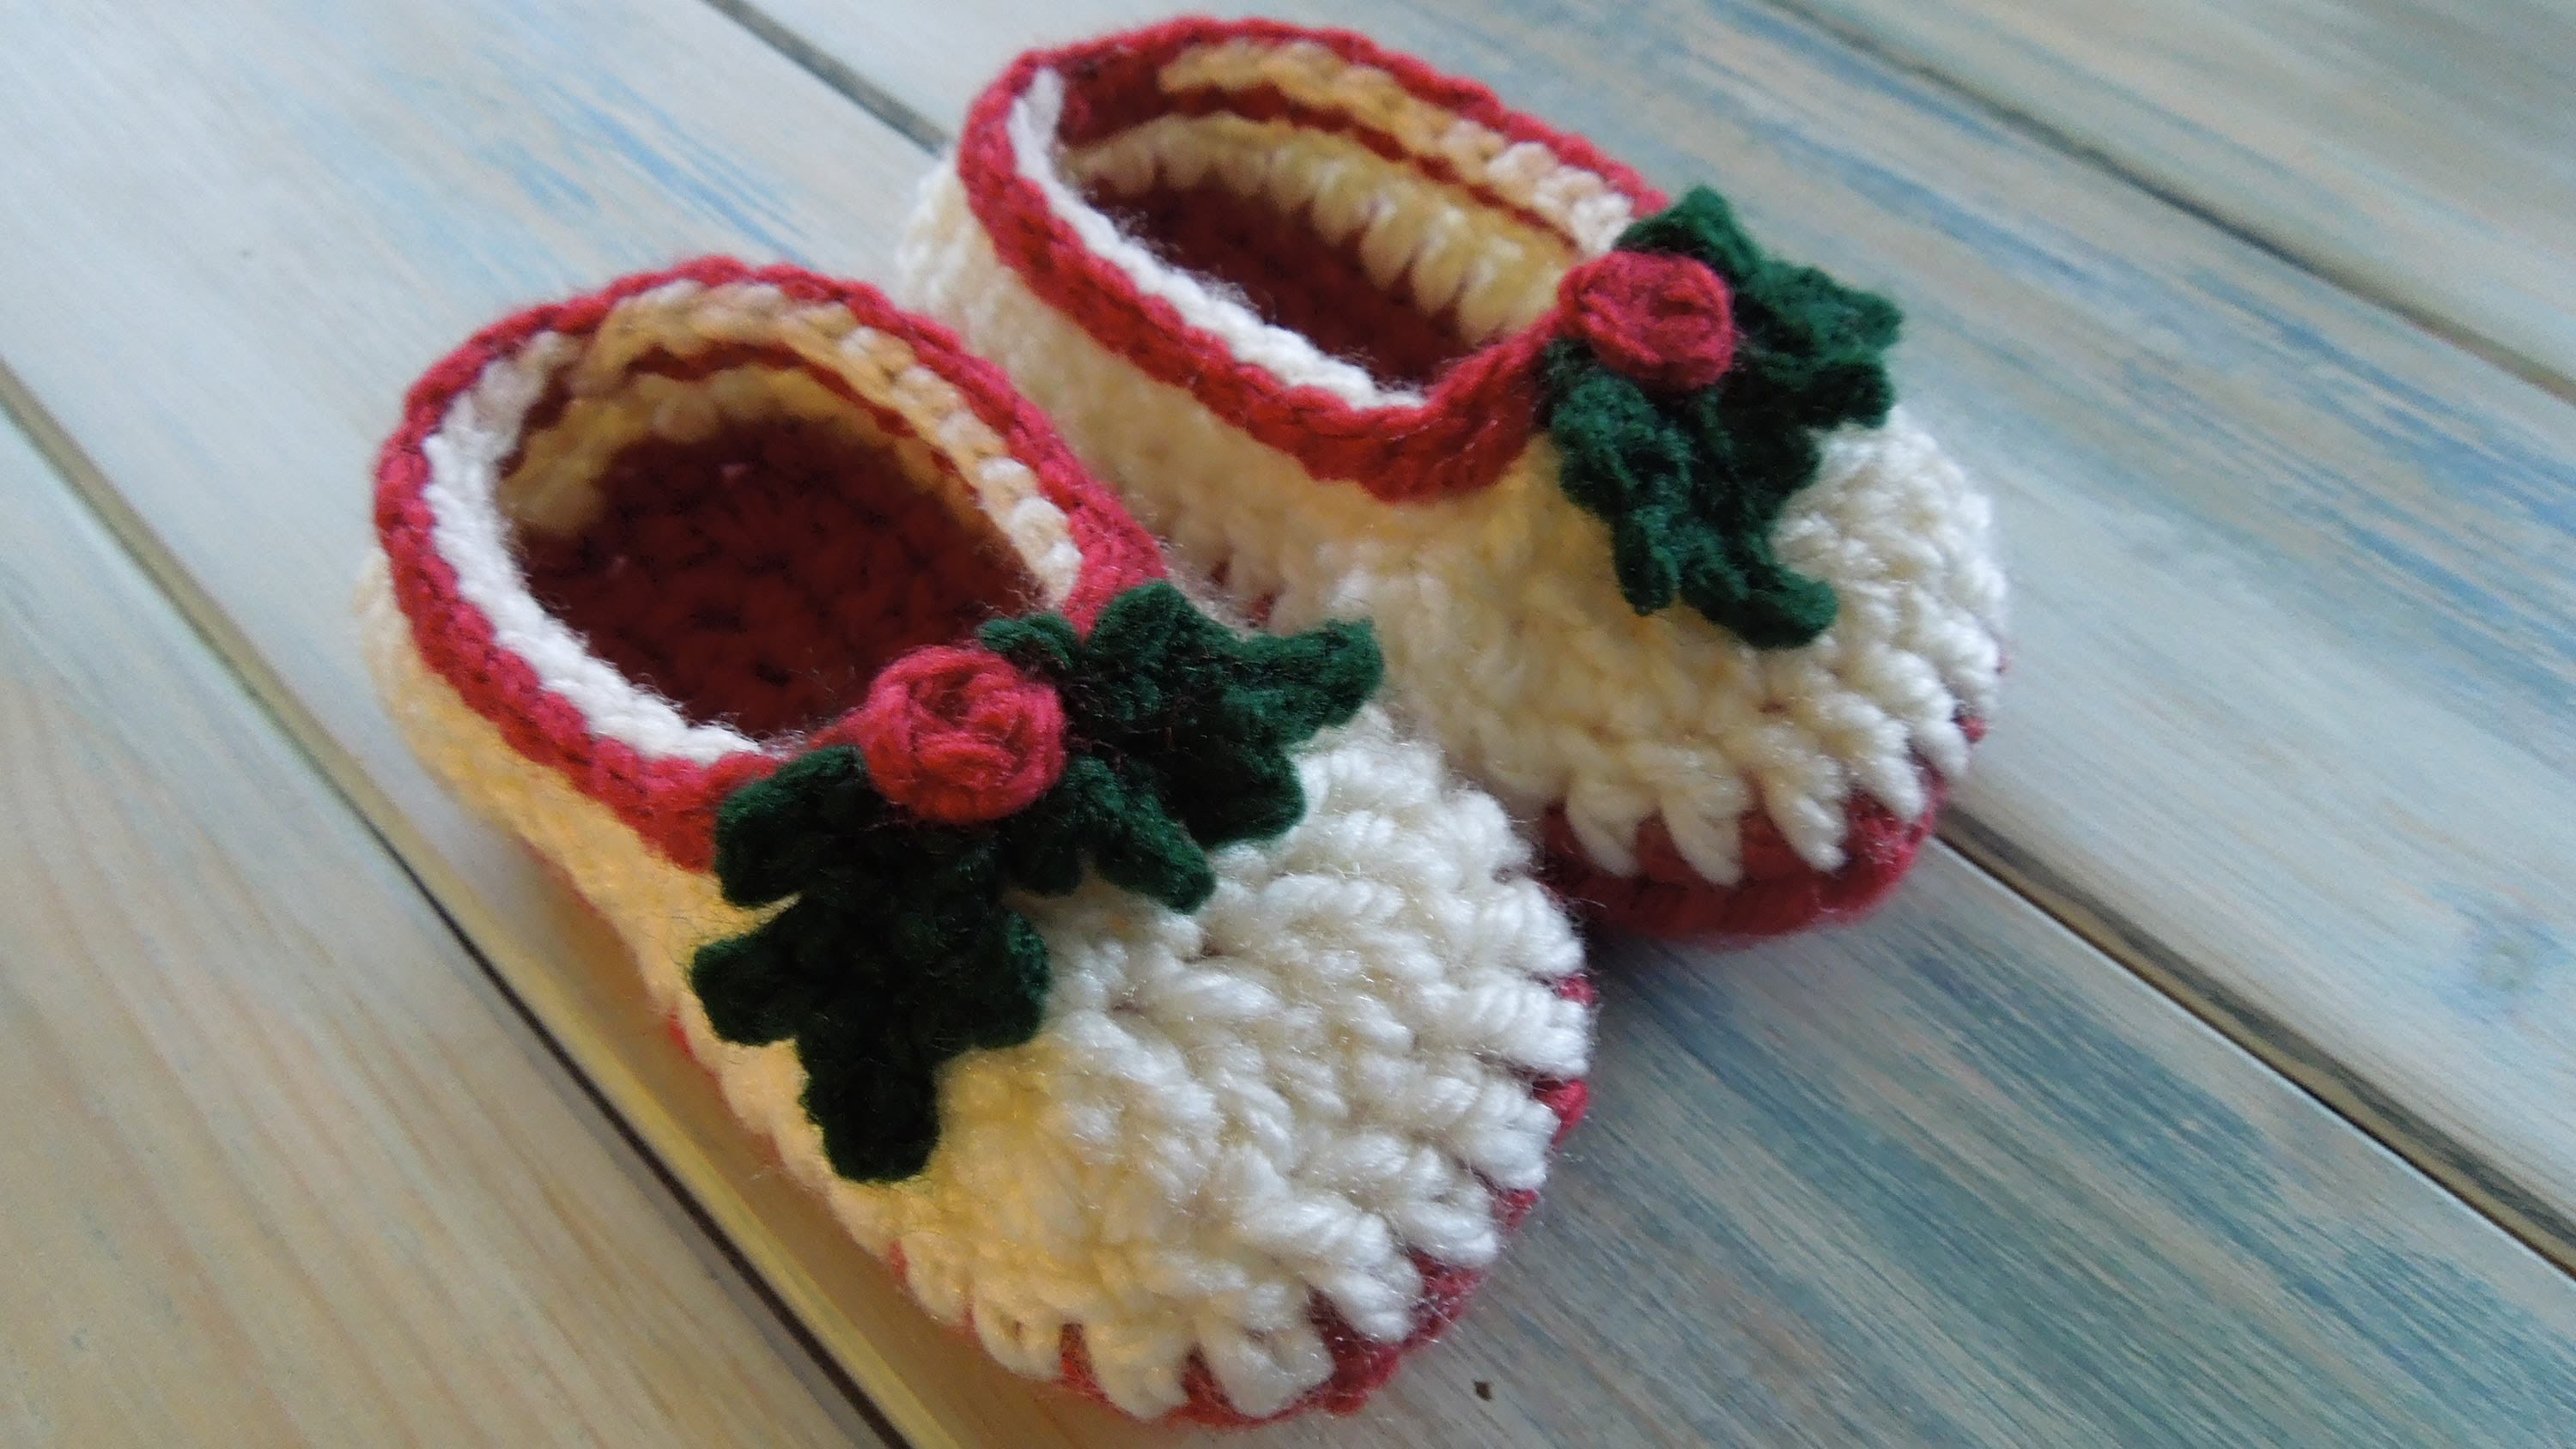 (crochet) How To - Crochet Simple Chunky Baby Booties